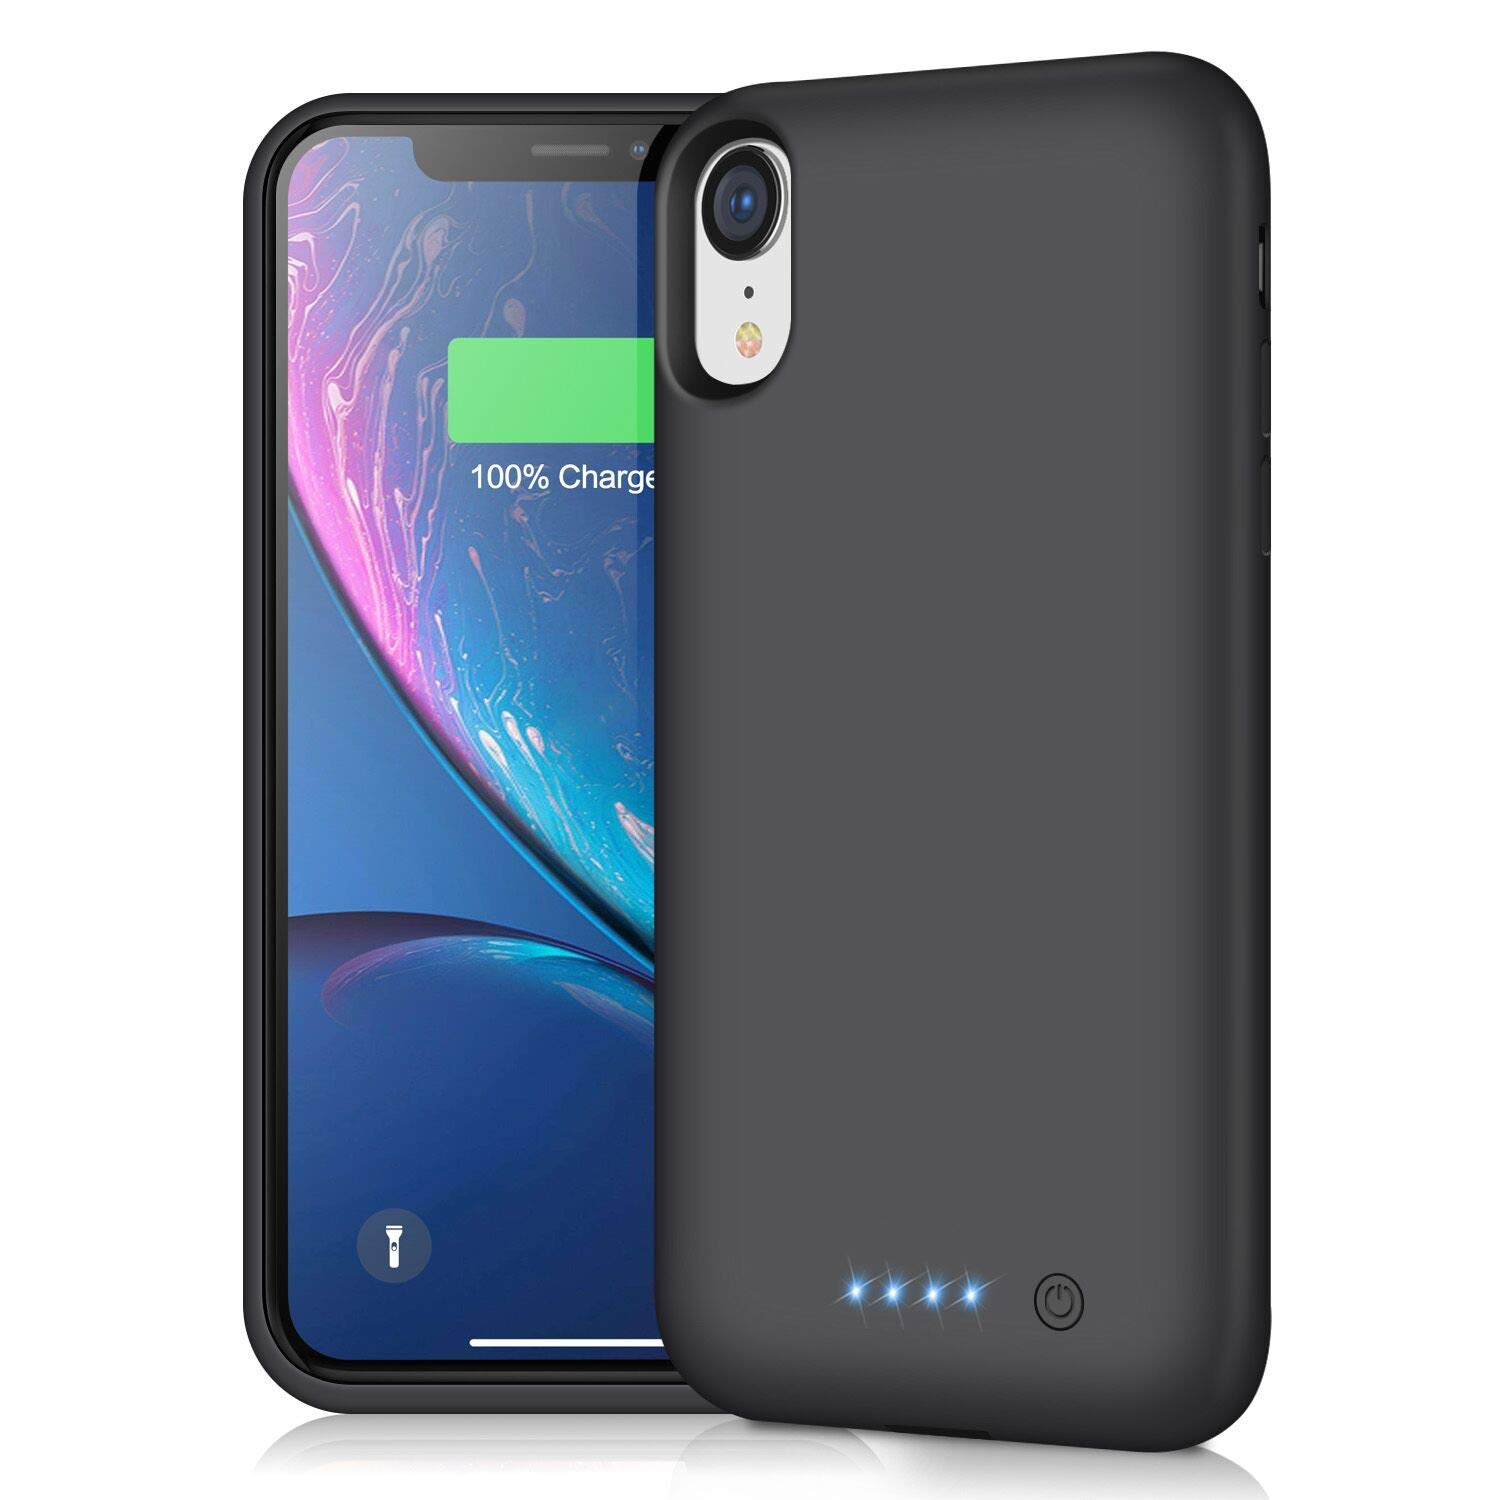 Funda Con Bateria De 6800mah Para Apple iPhone Xr Pxwaxpy [7tzrld88]